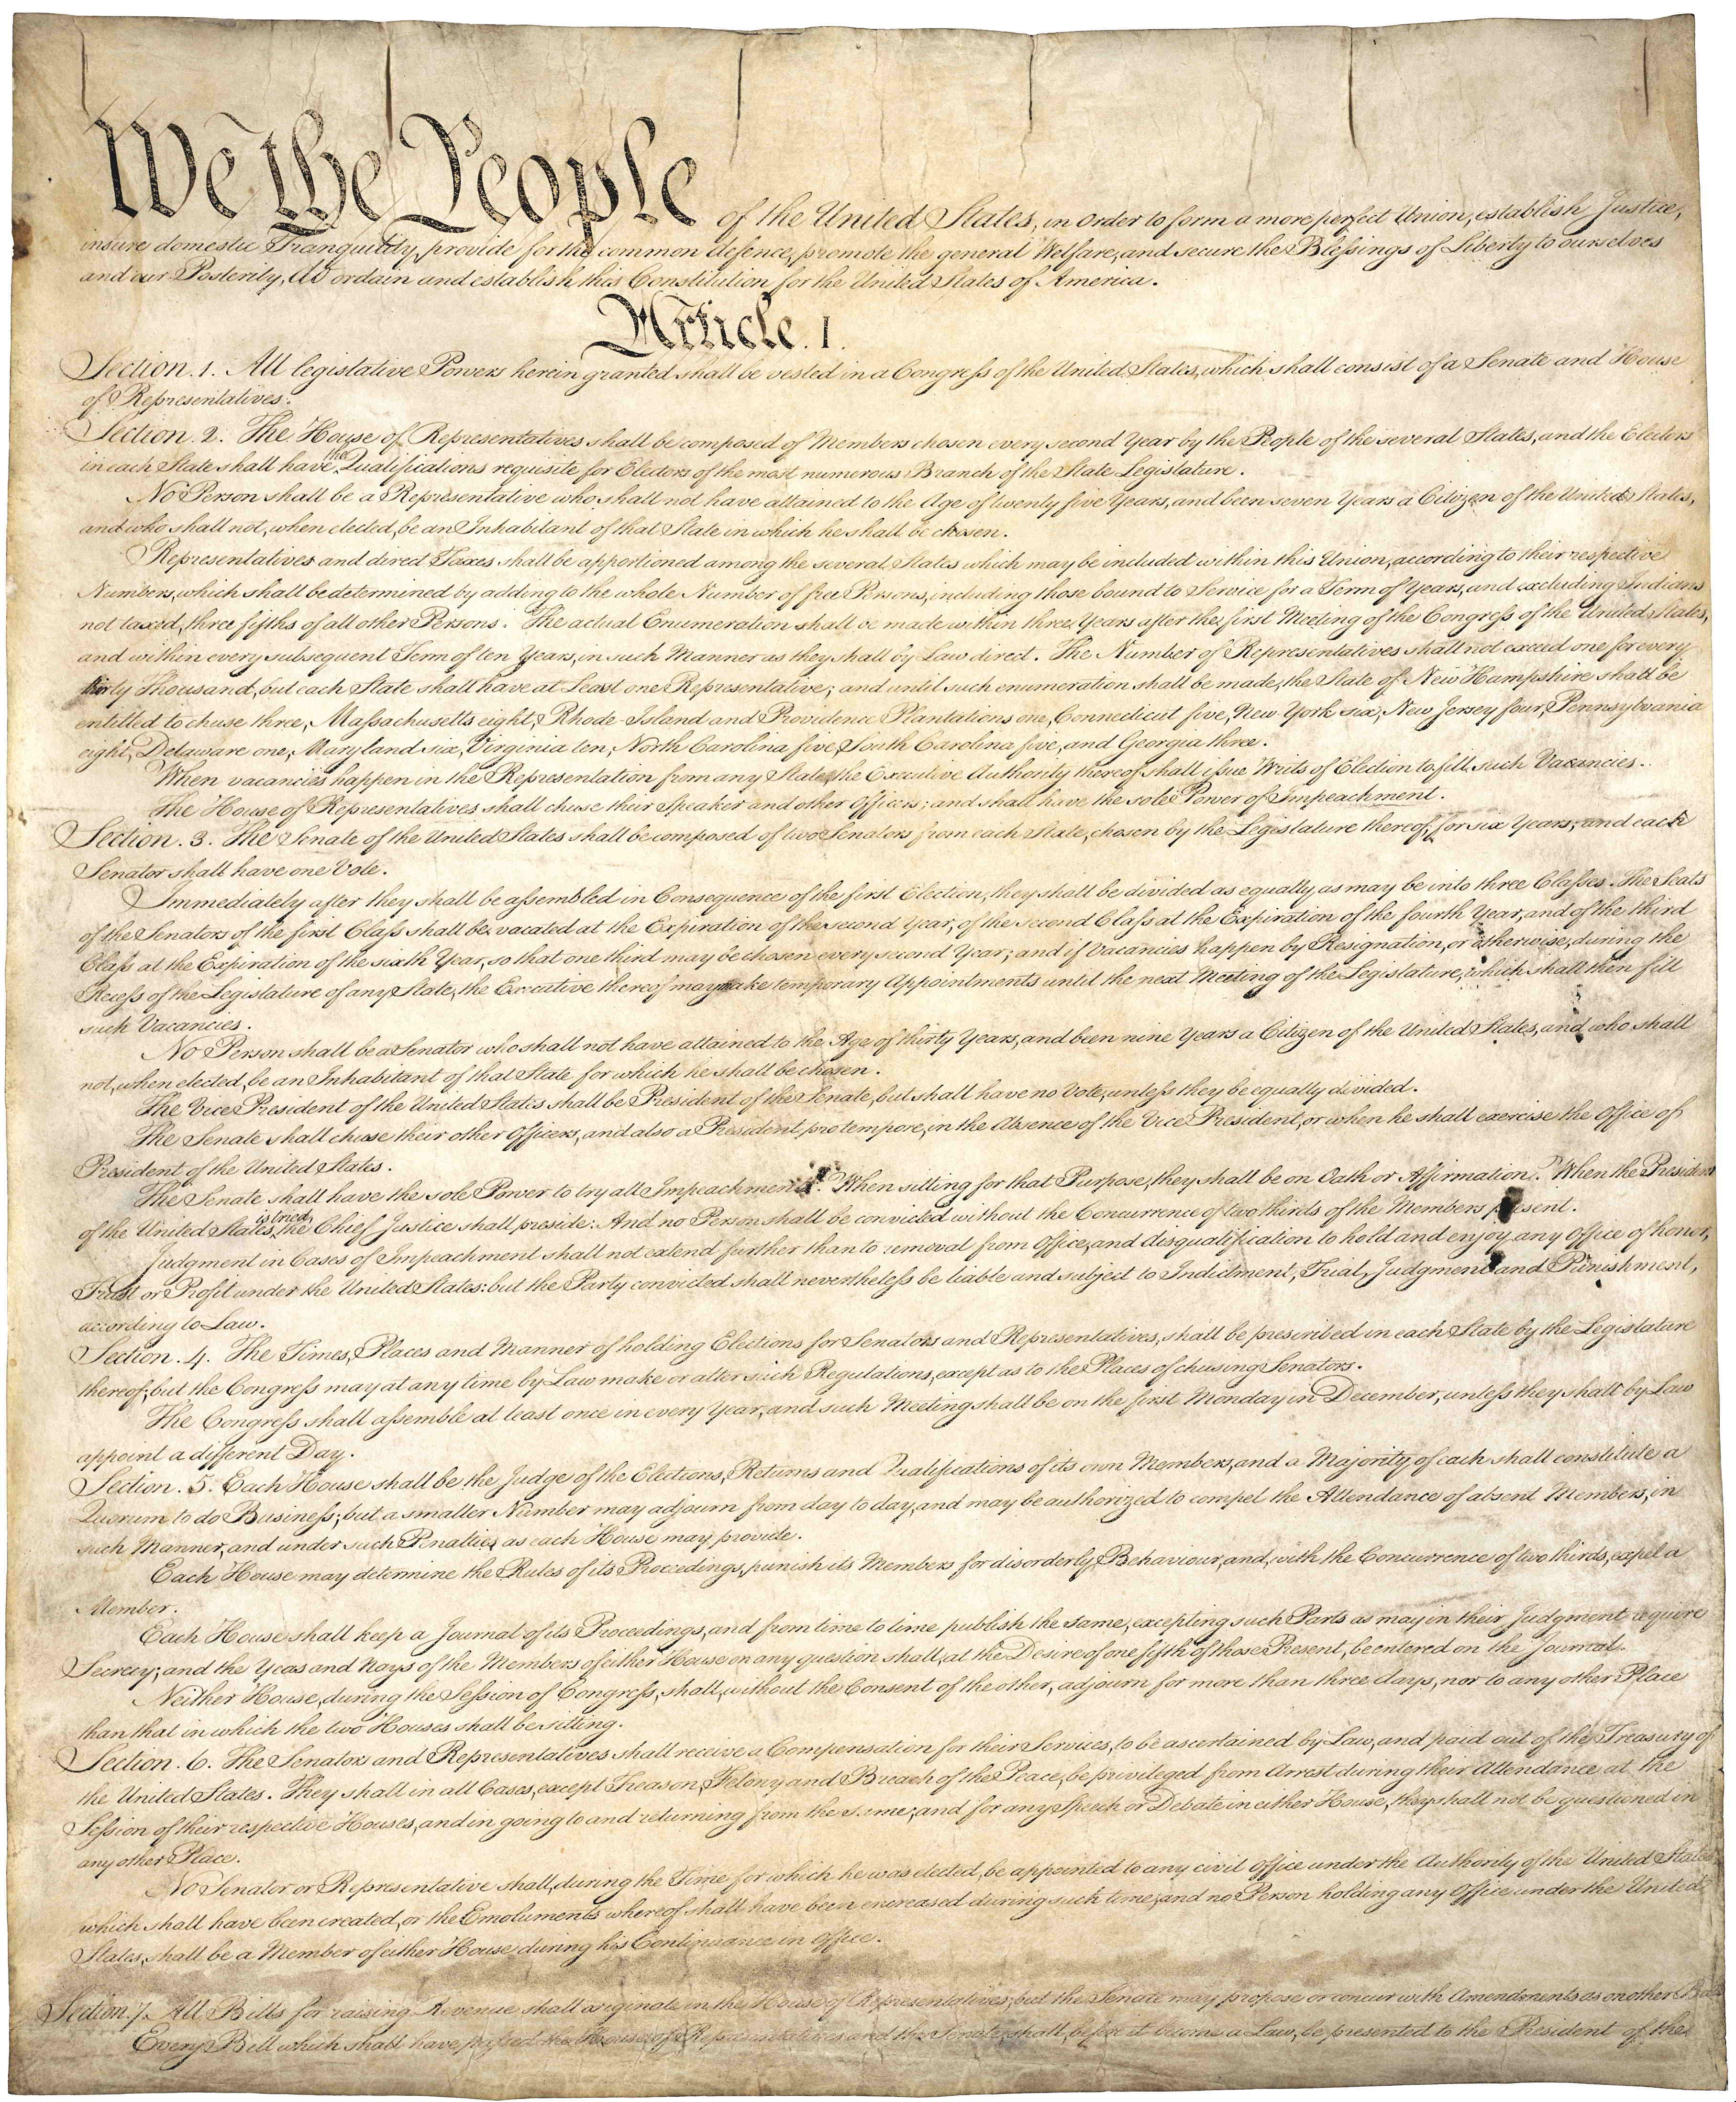 By Constitutional Convention—U.S. National Archives and Records Administration, Public Domain, https://commons.wikimedia.or